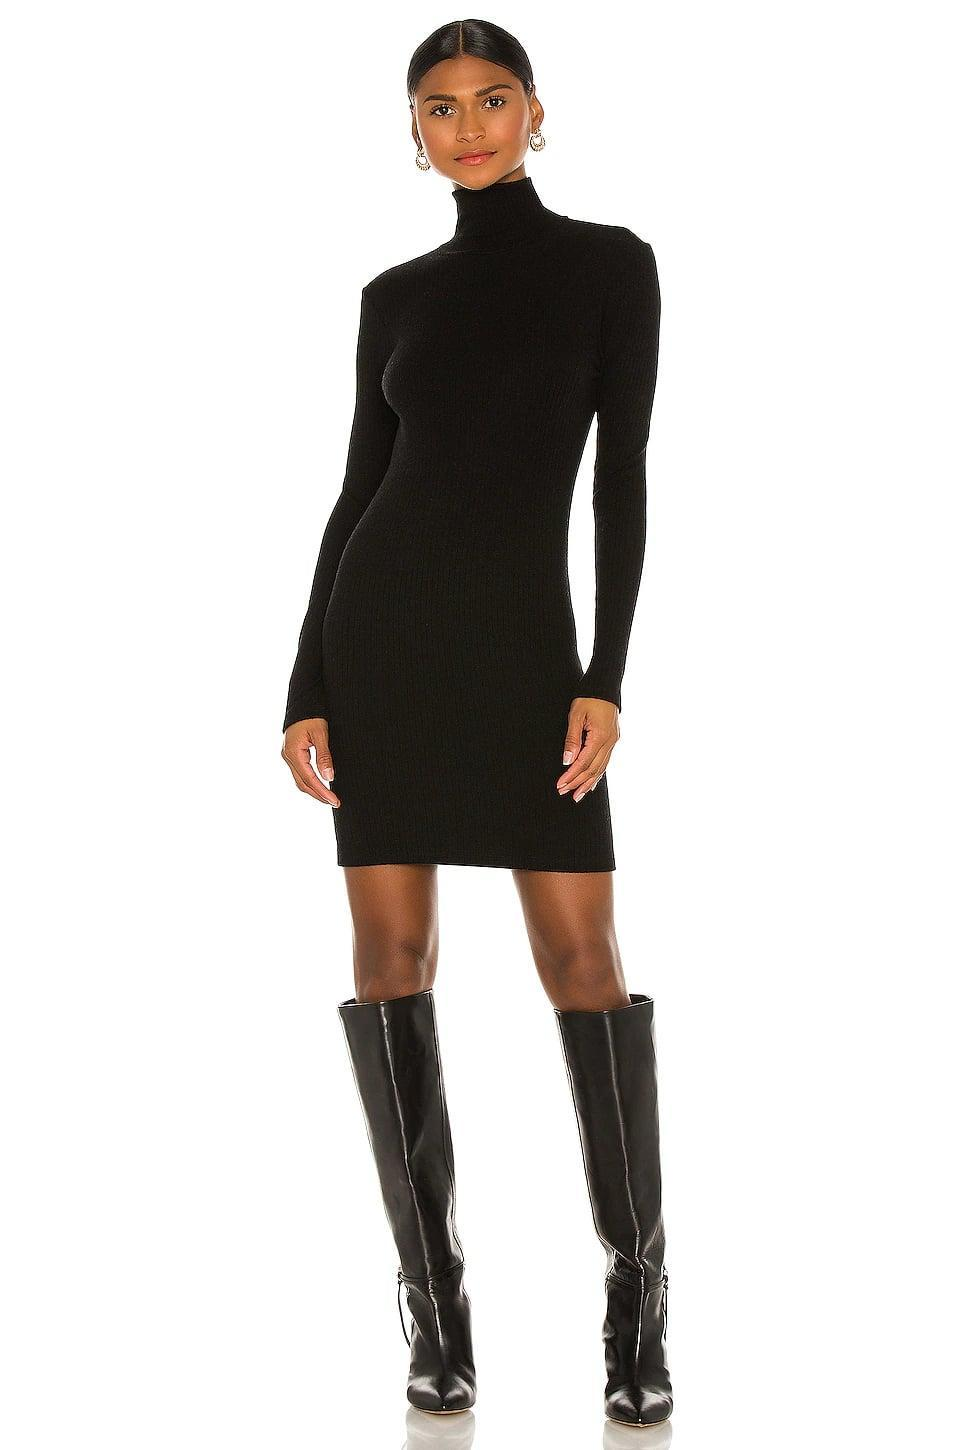 <p>A turtleneck is a fall and winter essential. This <span>Enza Costa Tencel Cashmere Rib Long Sleeve Zip Turtleneck Mini Dress</span> ($297) is made of luxurious cashmere, which is a dream.</p>